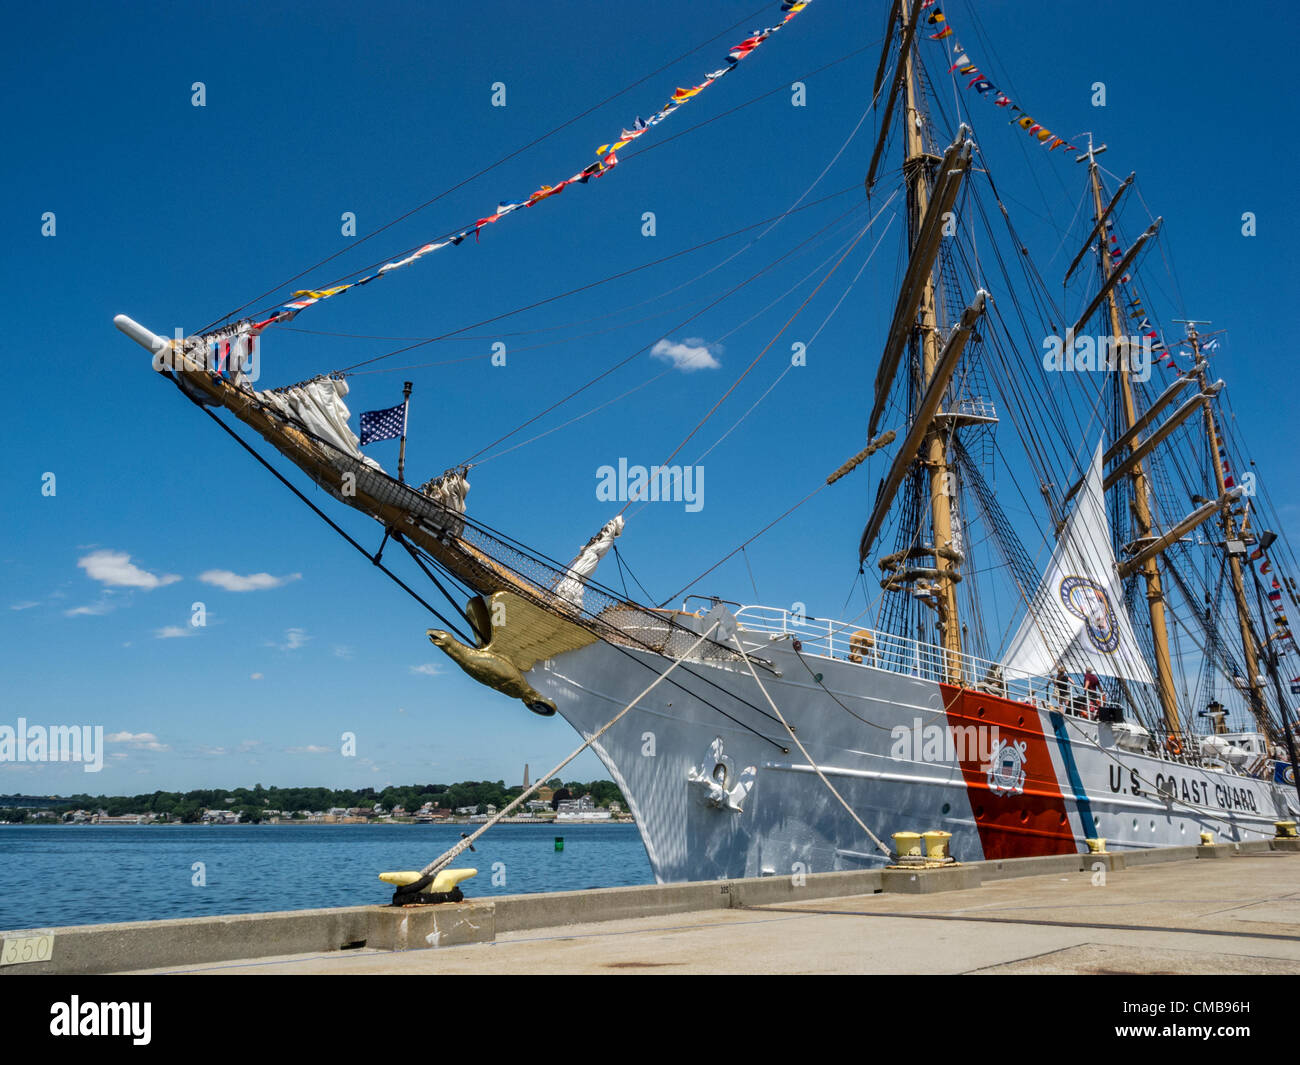 New London, Connecticut, USA - July 9, 2012: The US Coast Guard training ship Eagle moored at Fort Trumbull on the - Stock Image